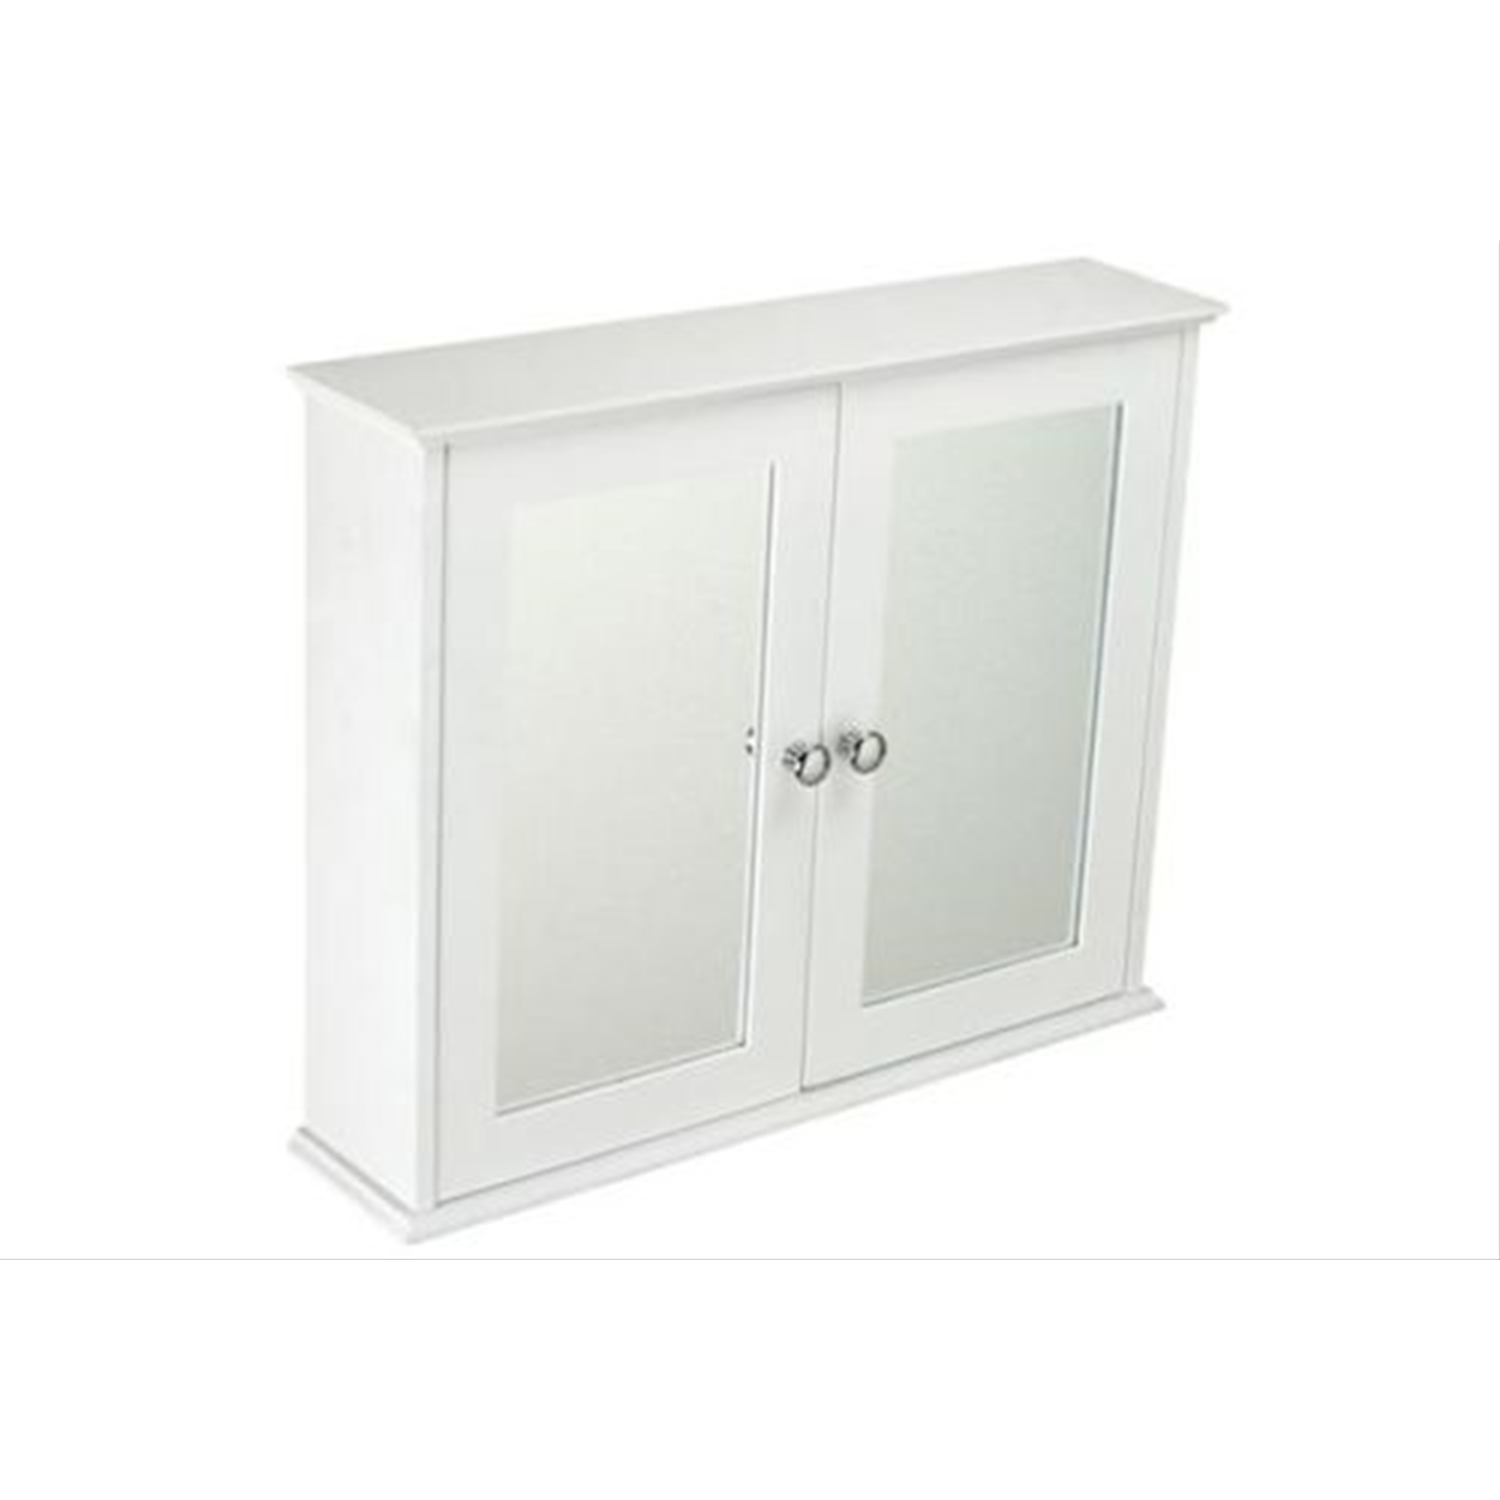 for mirror 3 door 1 mirror core cabinet white product close match